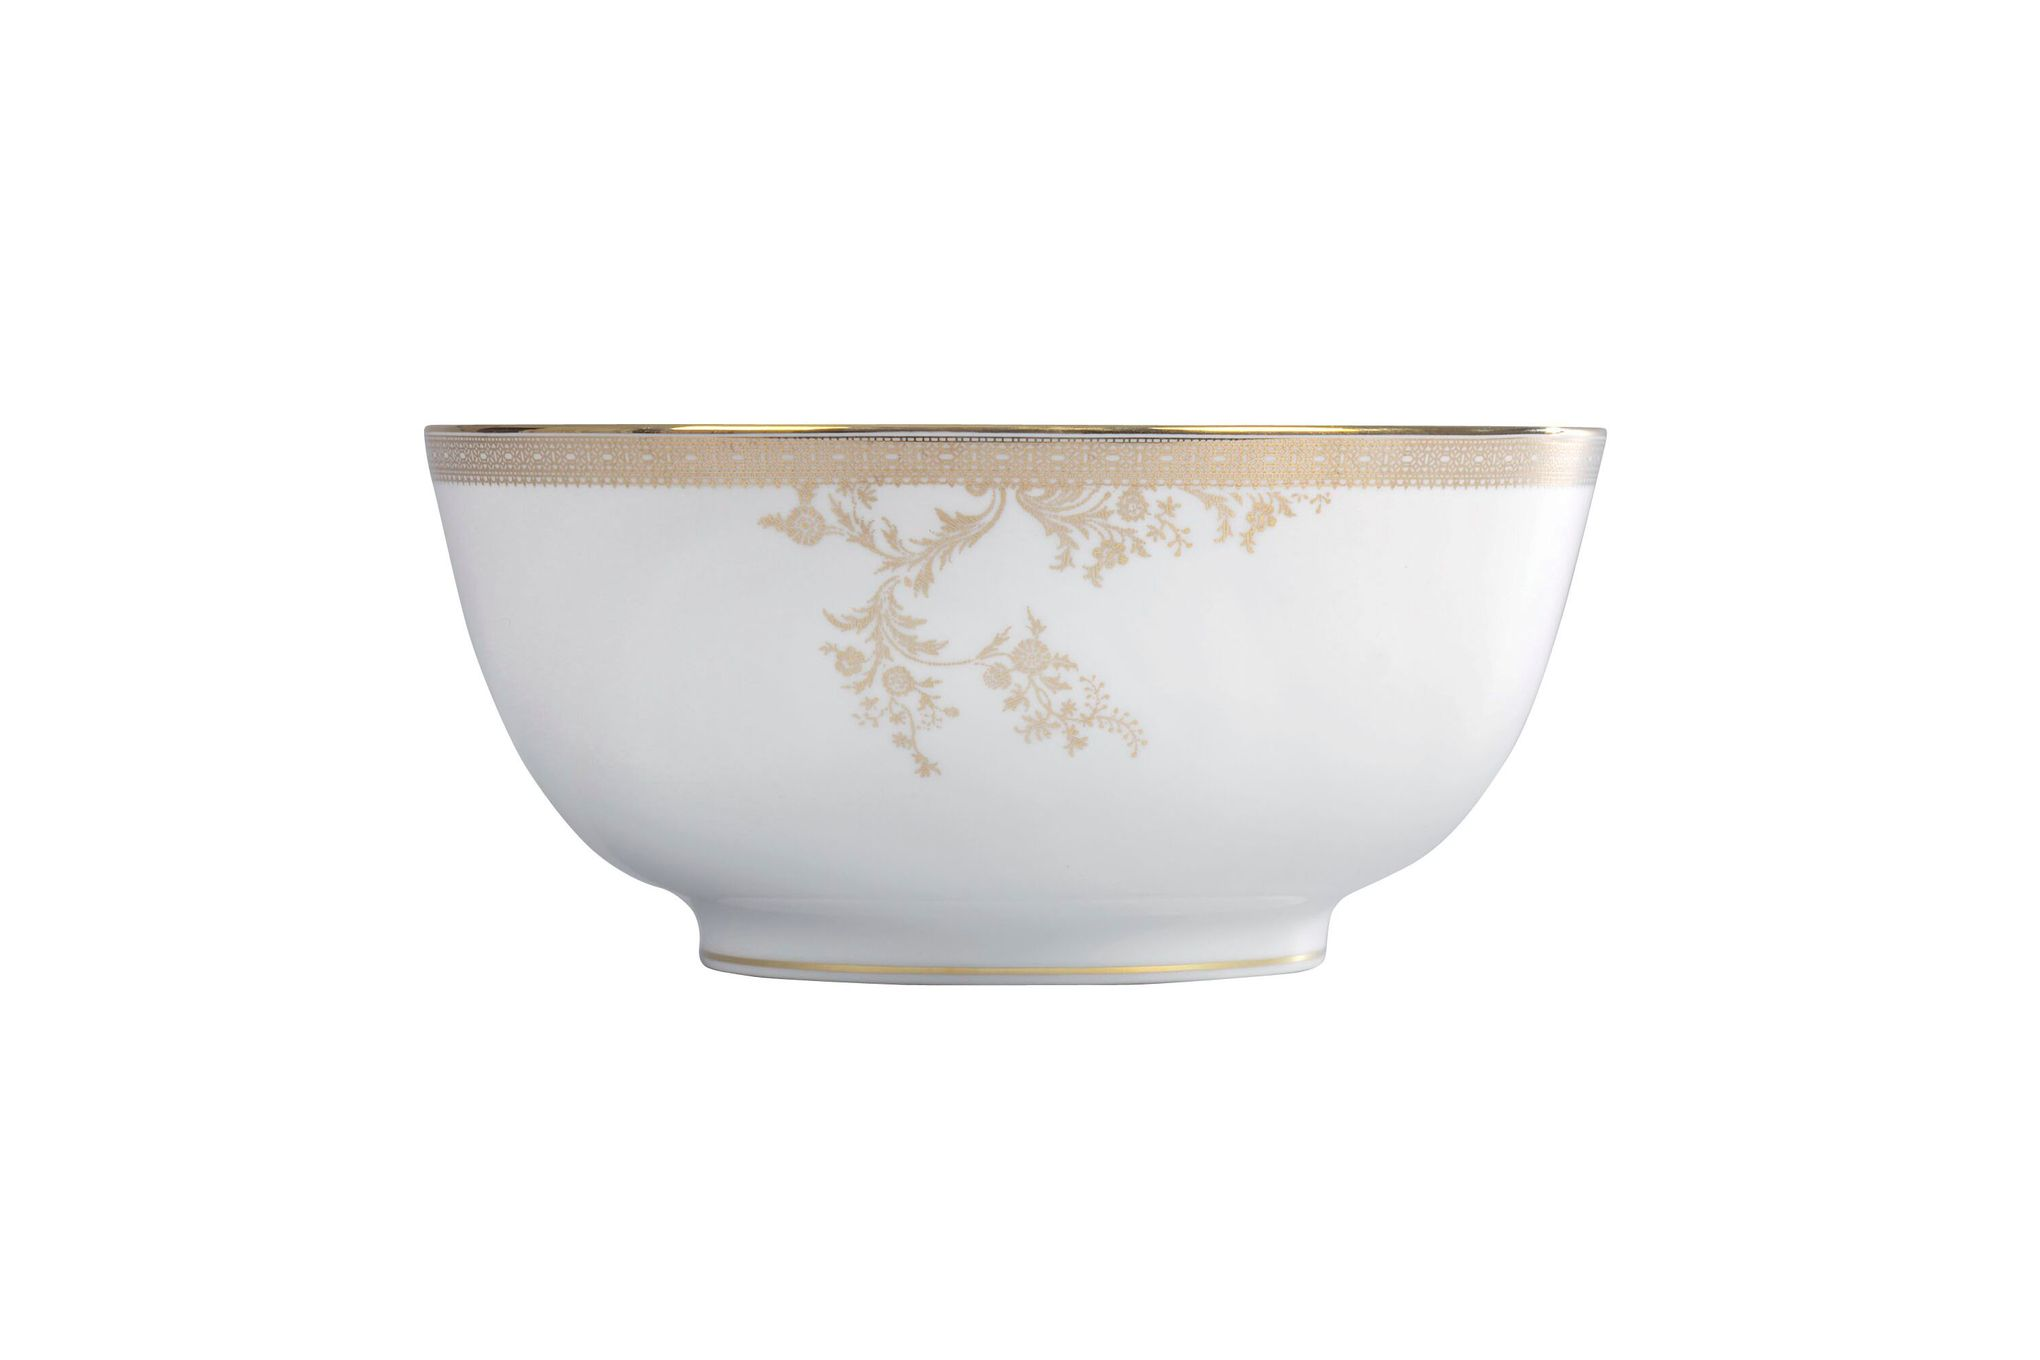 Vera Wang for Wedgwood Lace Gold Serving Bowl 25cm thumb 1